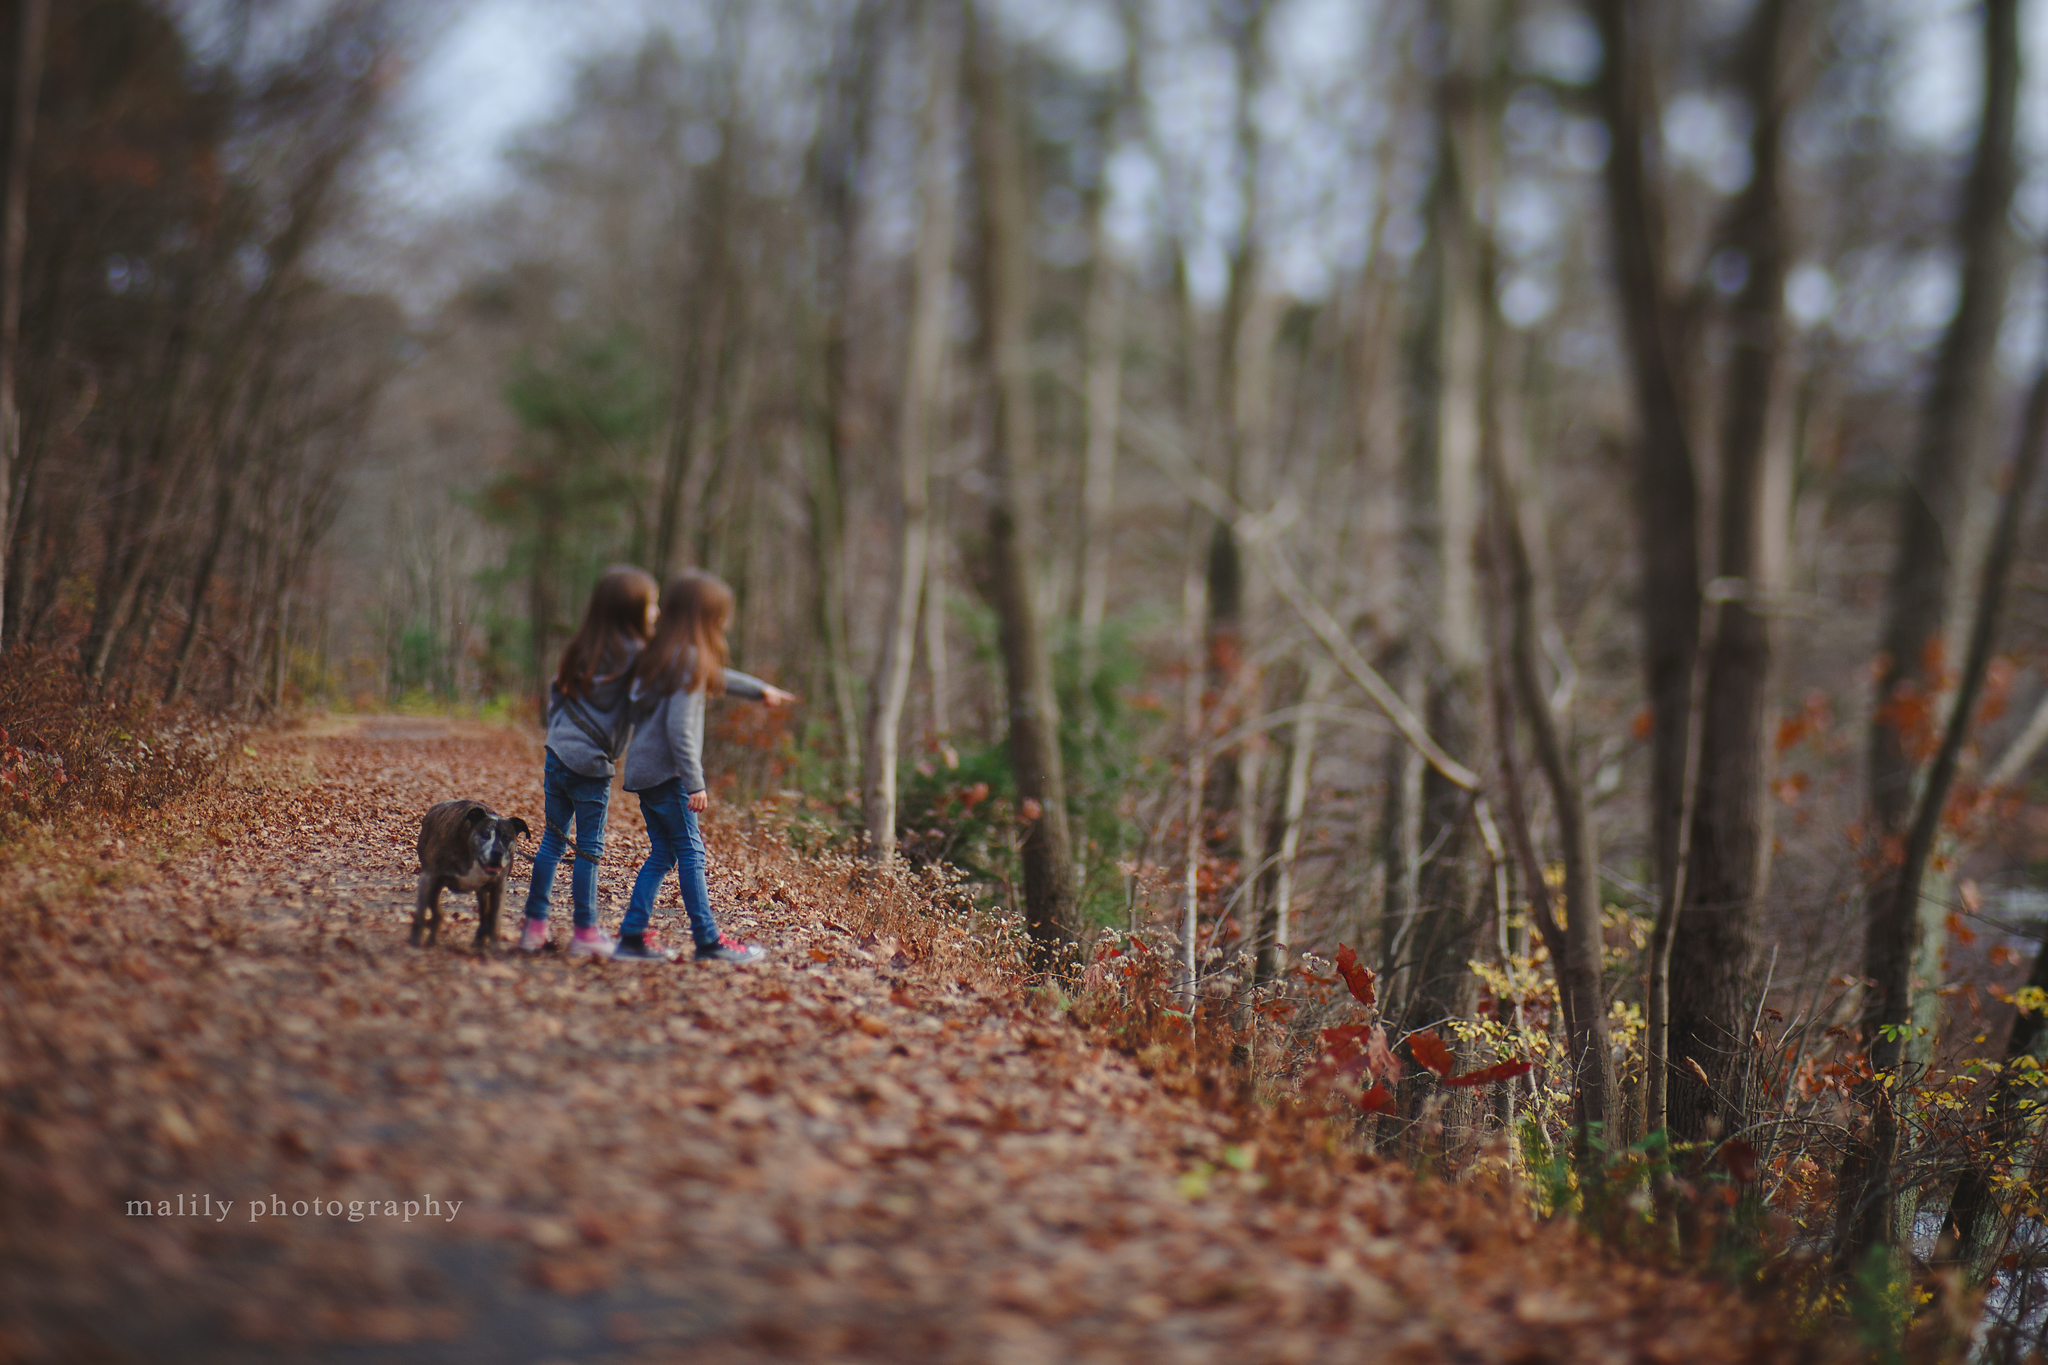 malily photography | schuylkill haven photographer